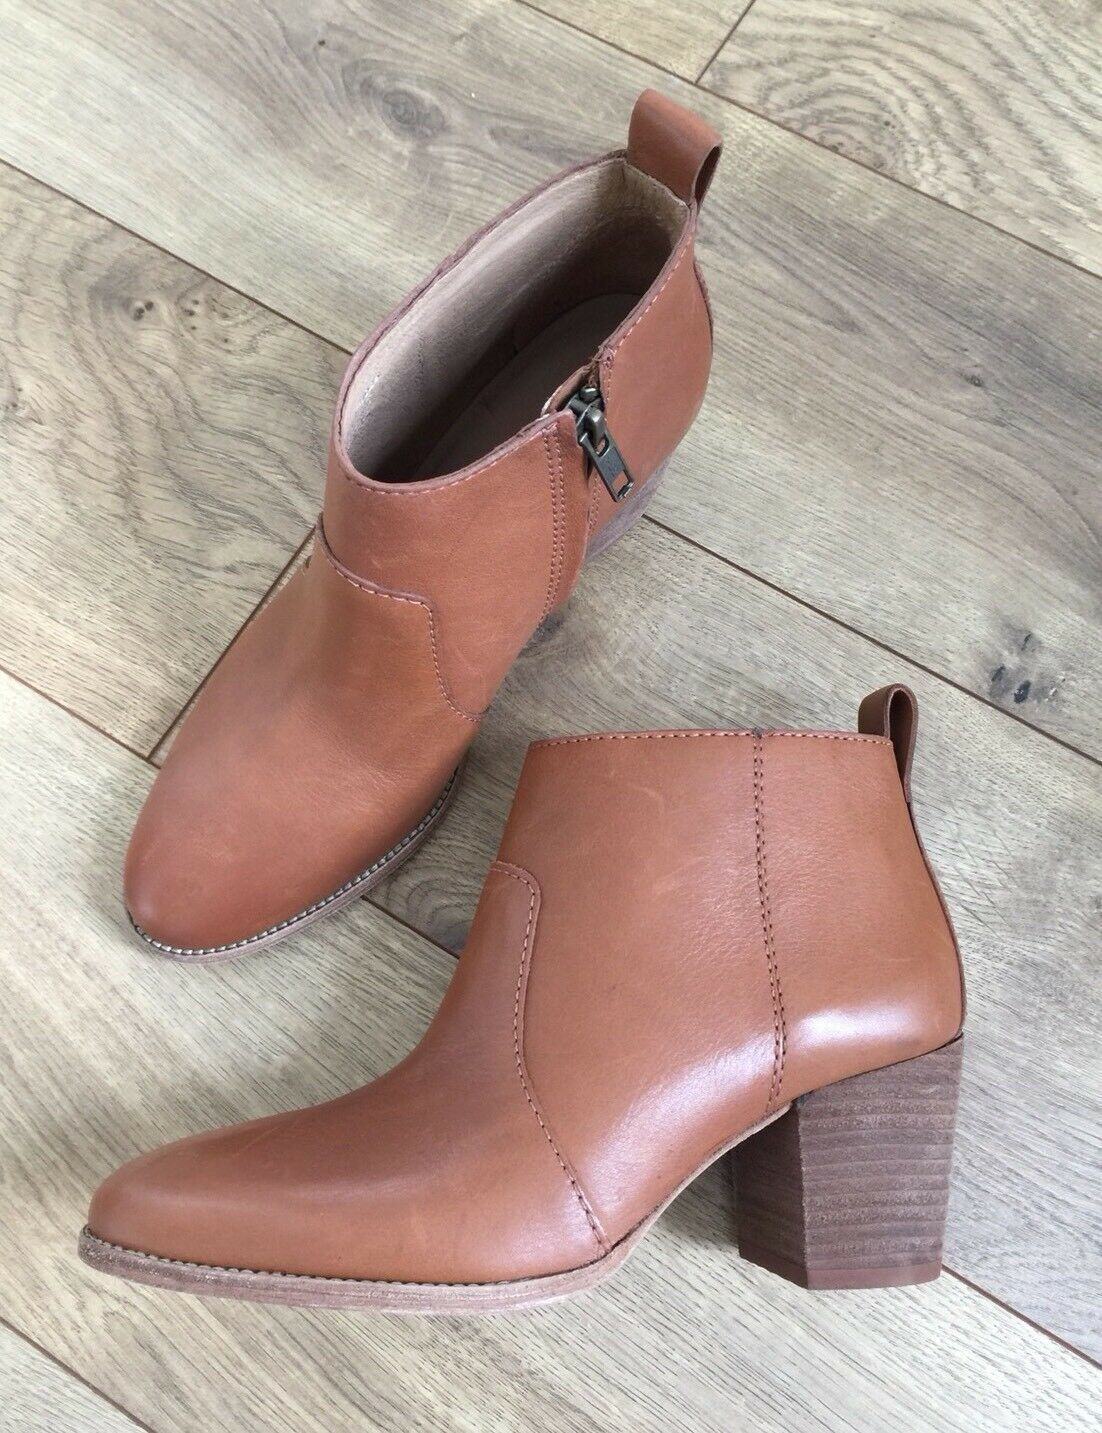 New Madewell Brenner Ankle Stivali Pelle English Saddle marrone  Sz Sz  marrone  5400bf